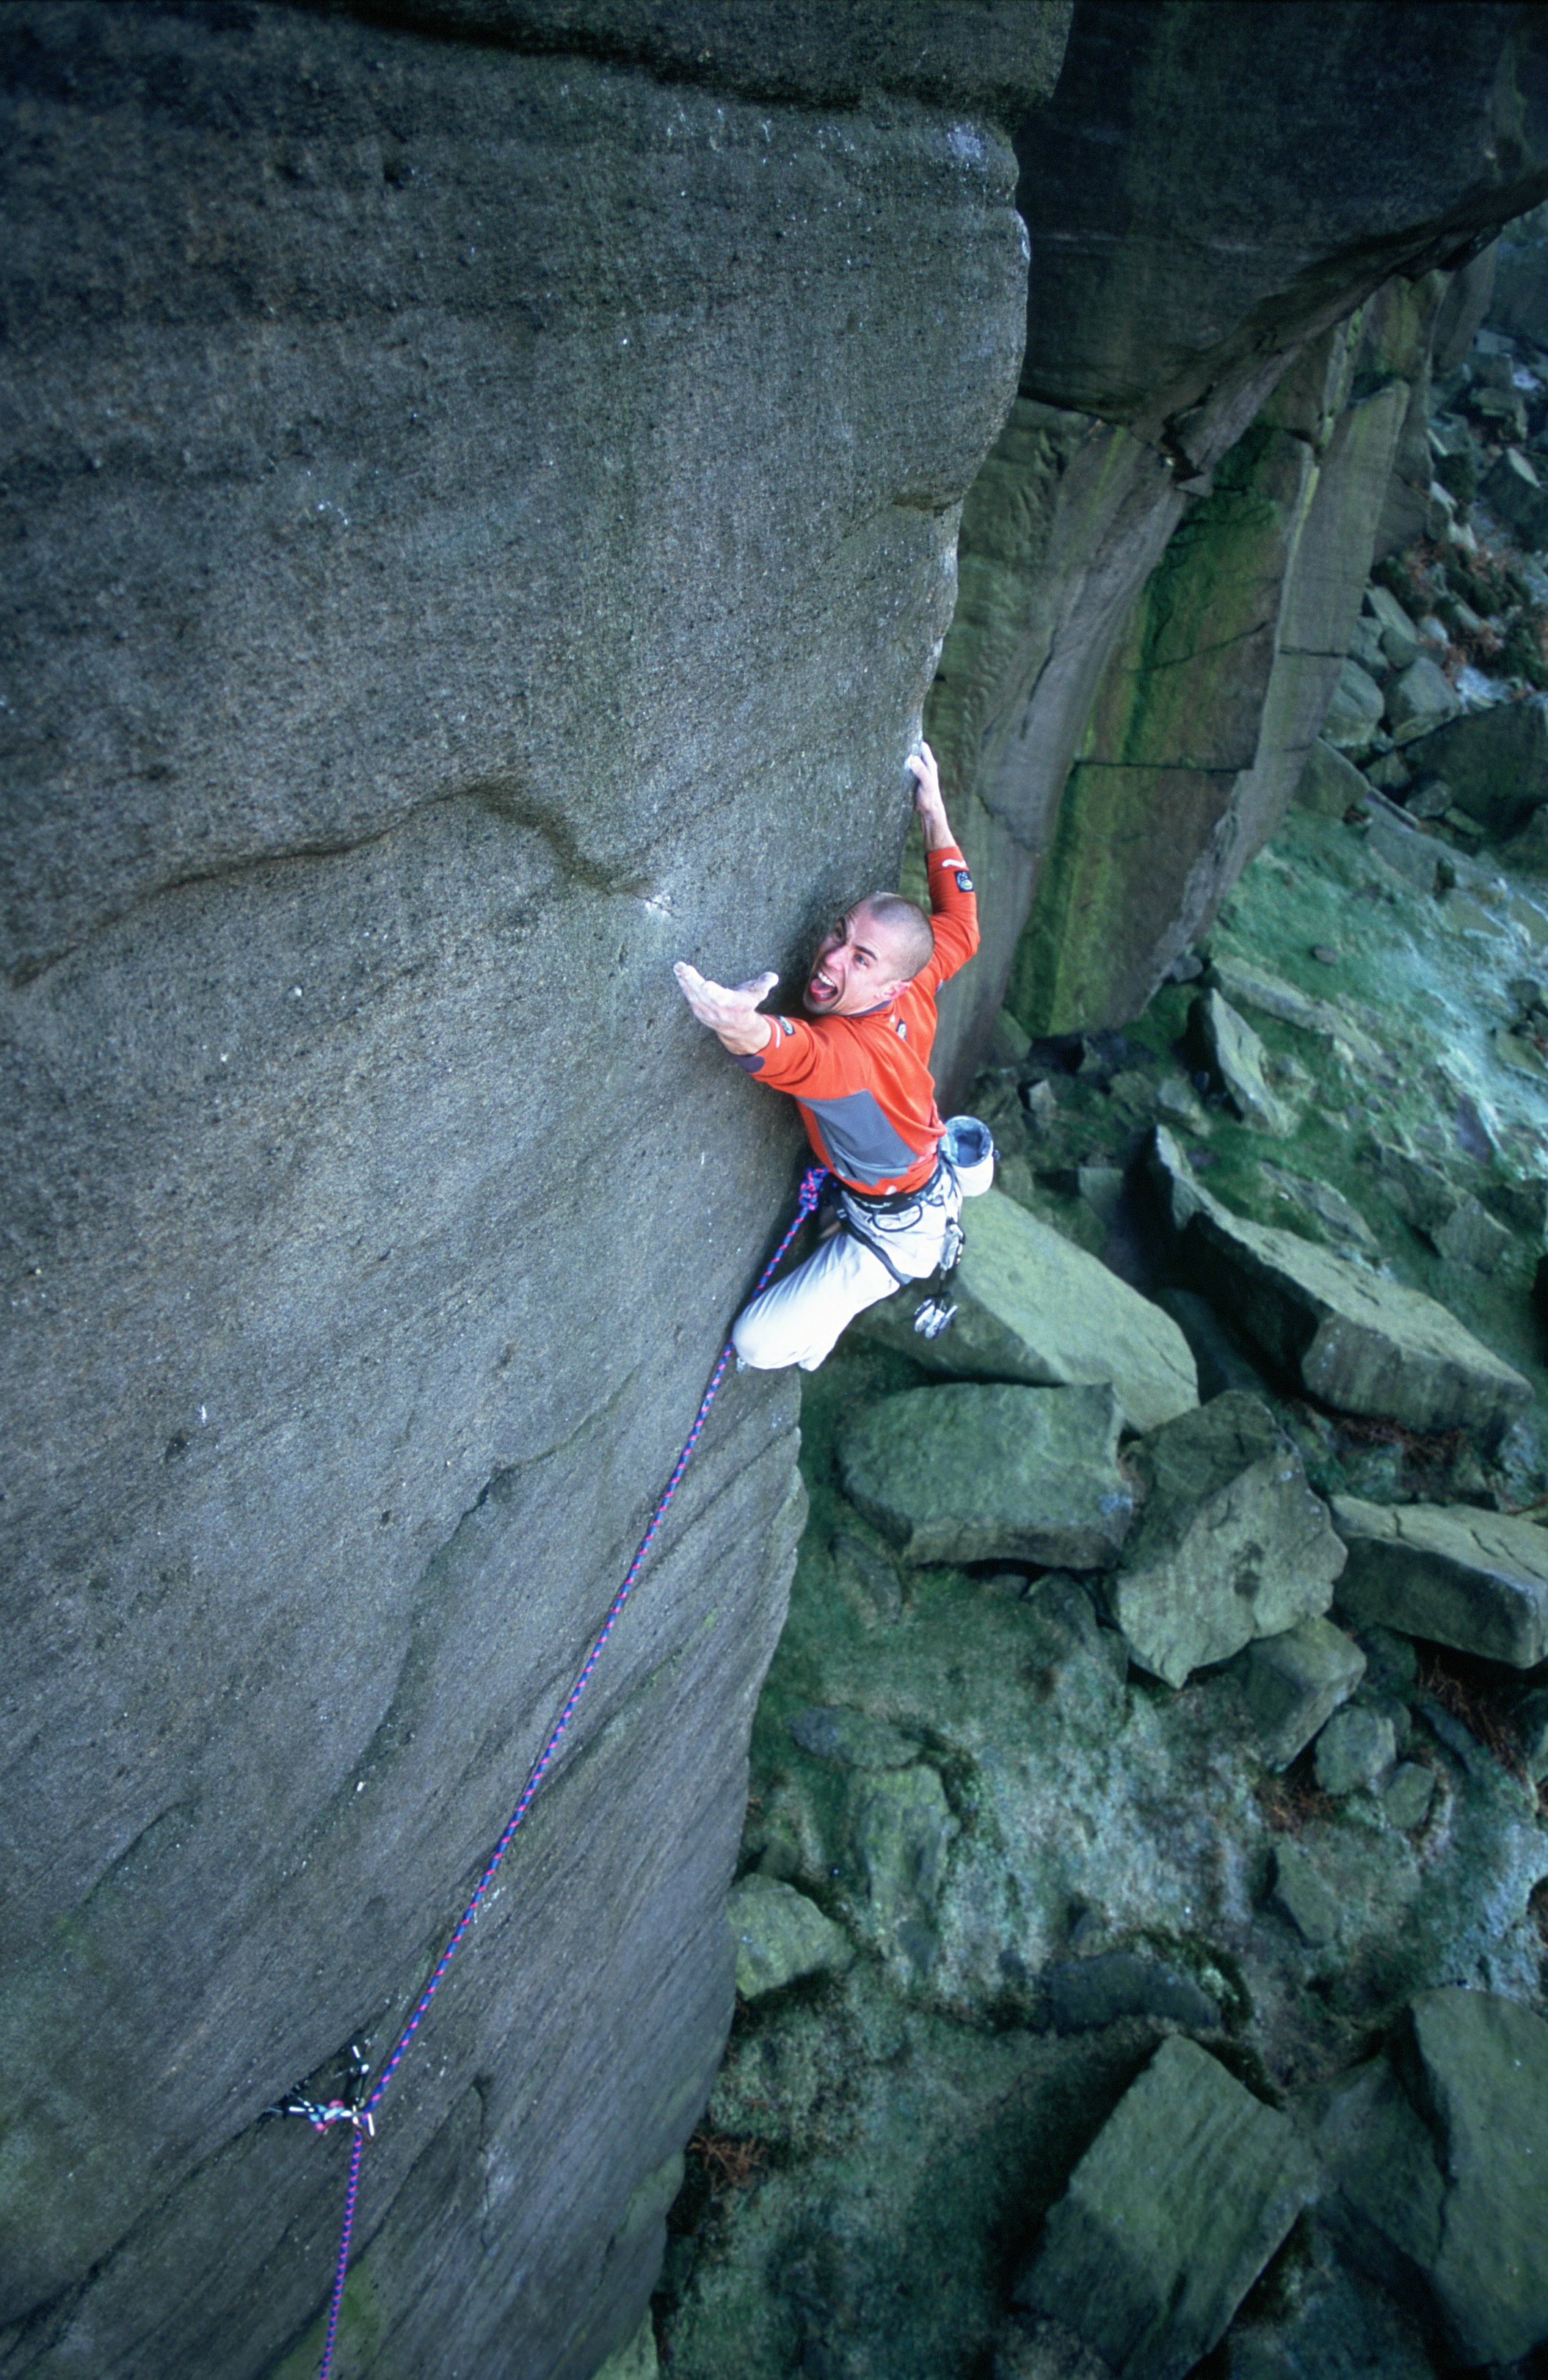 Equilibrium E10 7a, Burbage, UK. Second ascent in 2002.  Photo: Mike Robertson